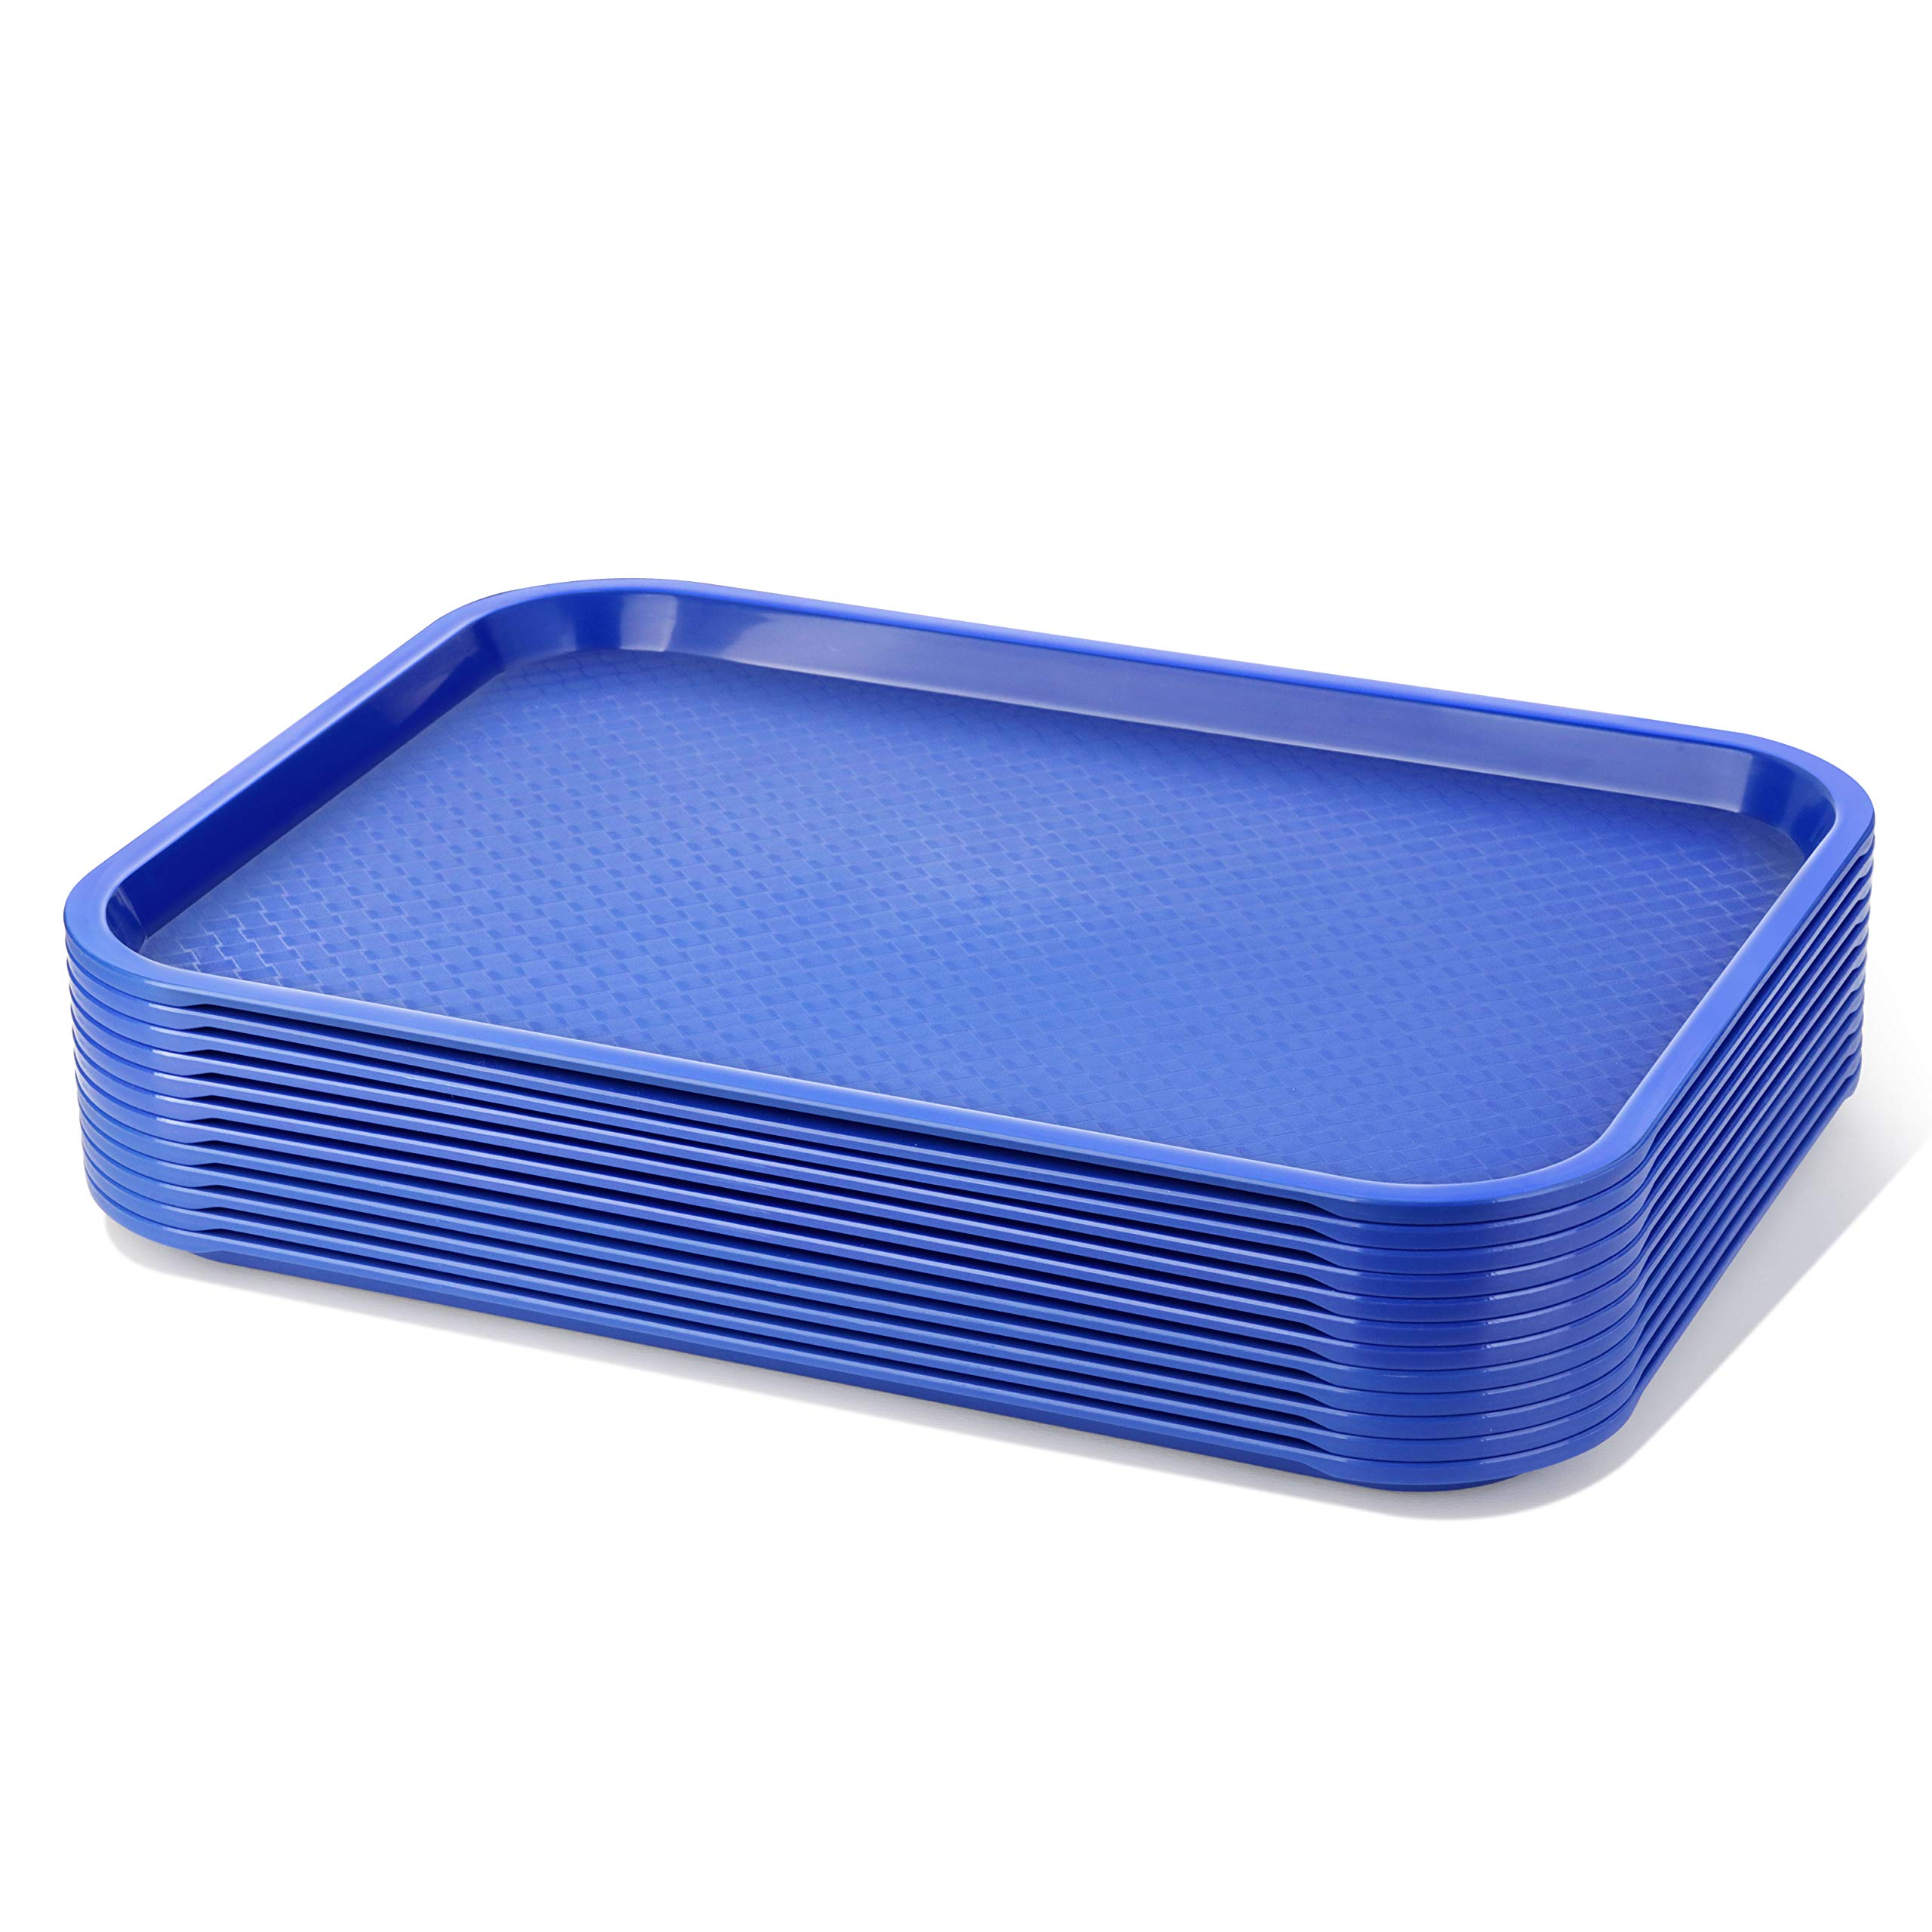 New Star Foodservice 24548 Fast Food Tray, 12 by 16-Inch, Blue, Set of 12